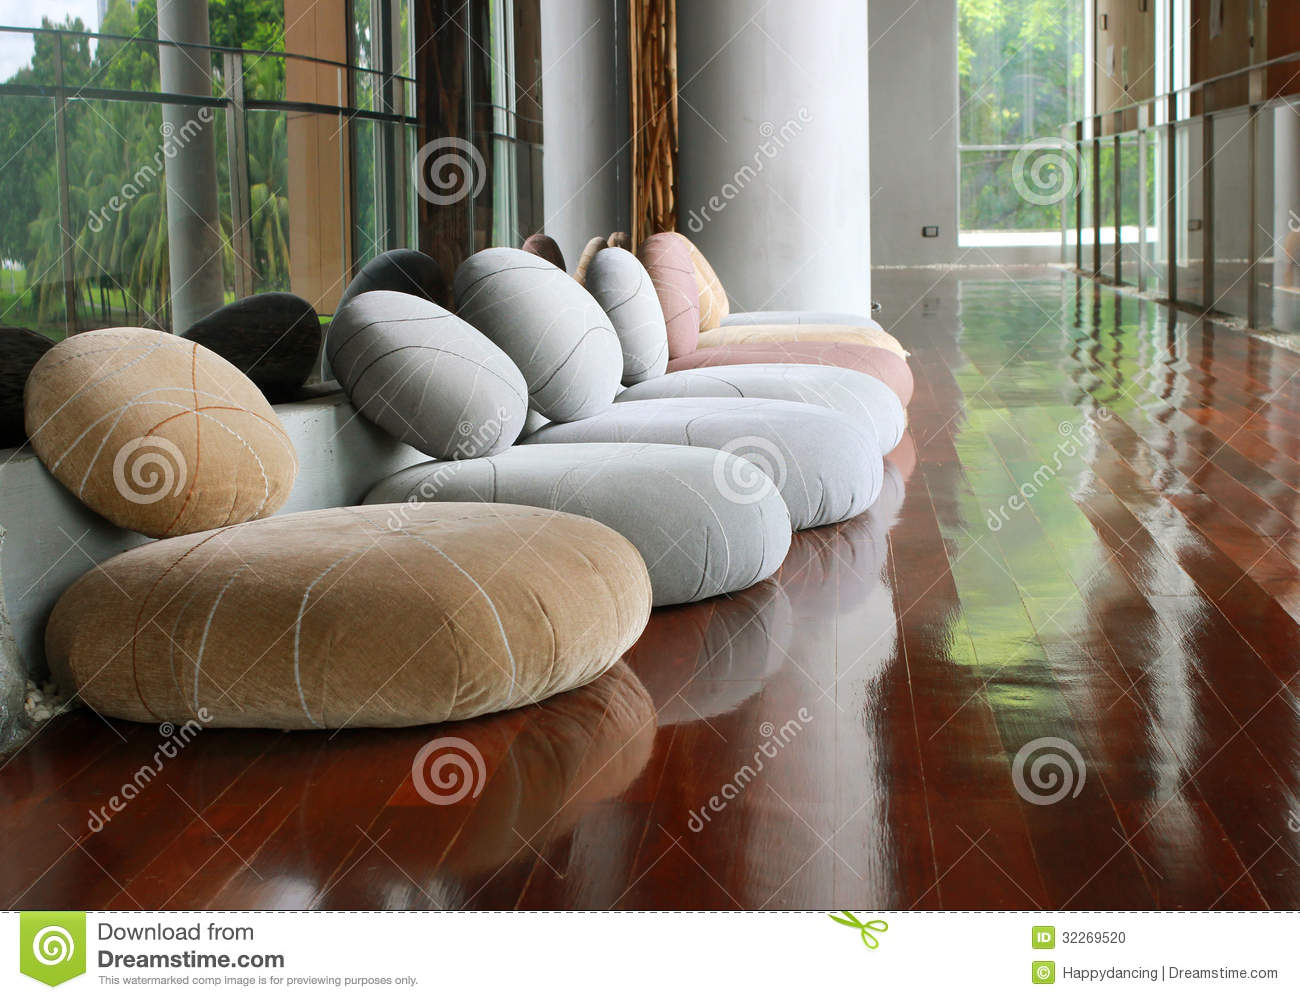 Cushion seat in quiet room for meditation